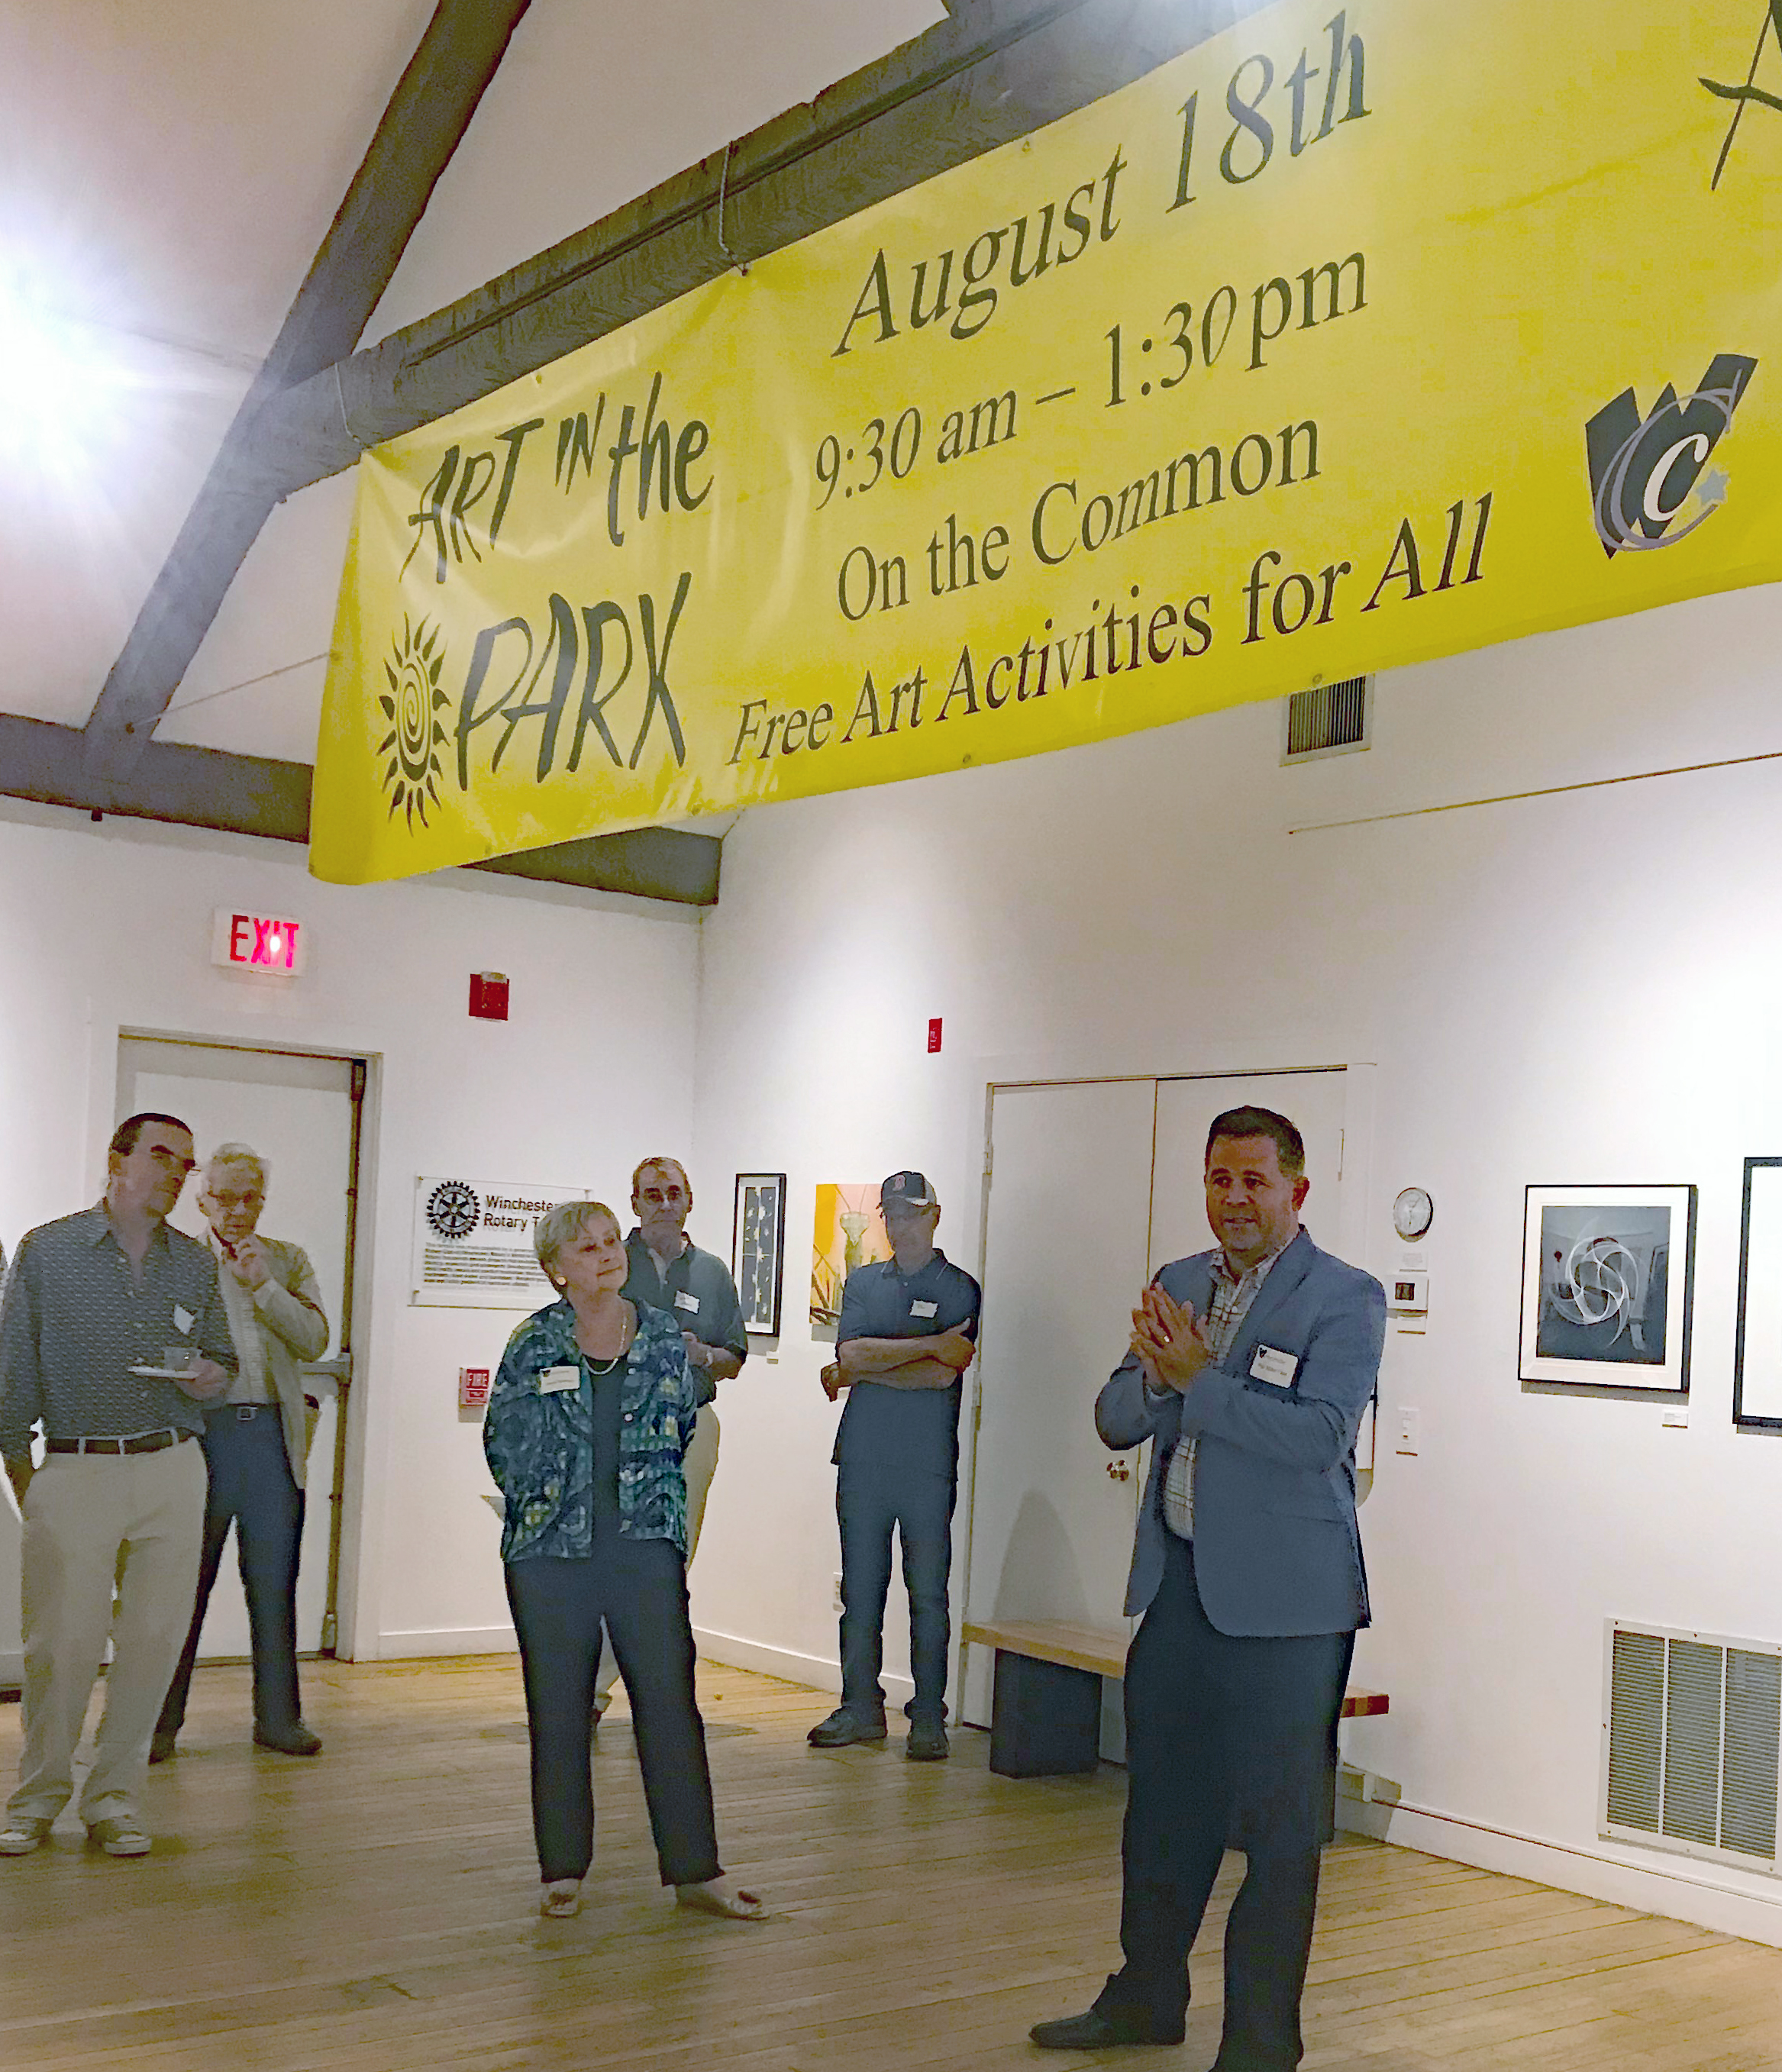 Banner at Art in August Reception